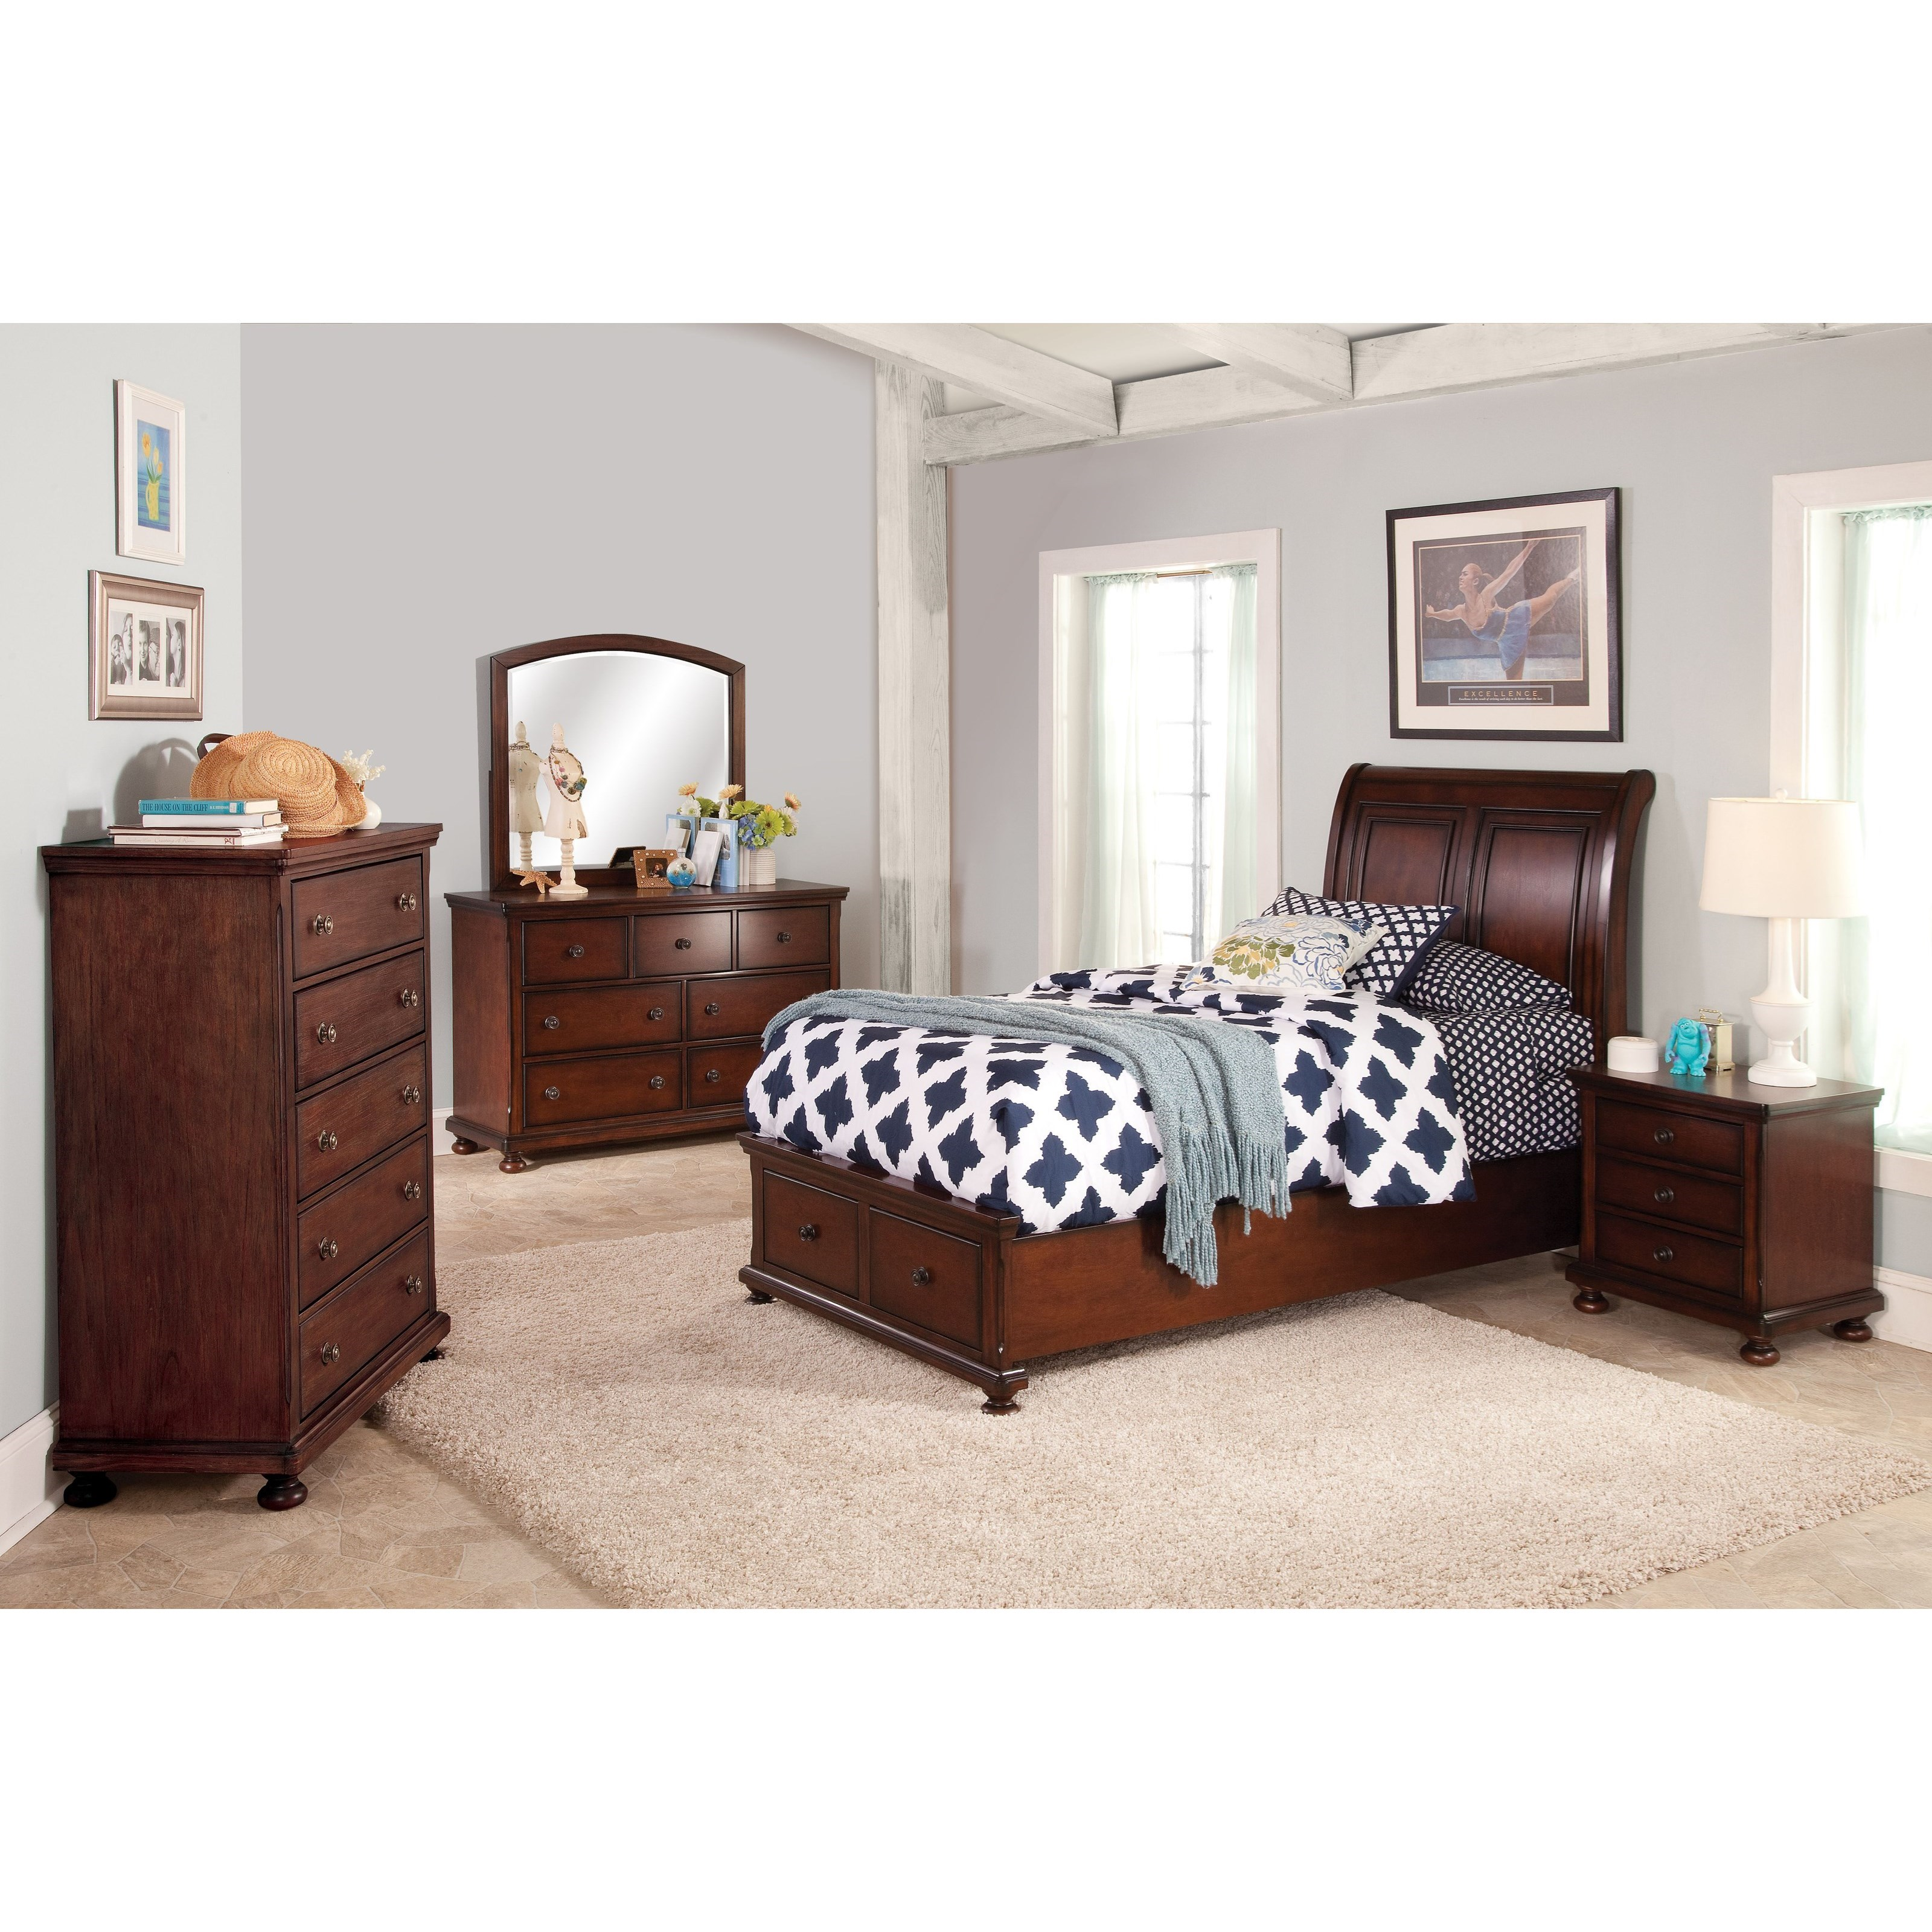 New classic jesse twin bedroom group dunk bright for Bedroom furniture groups